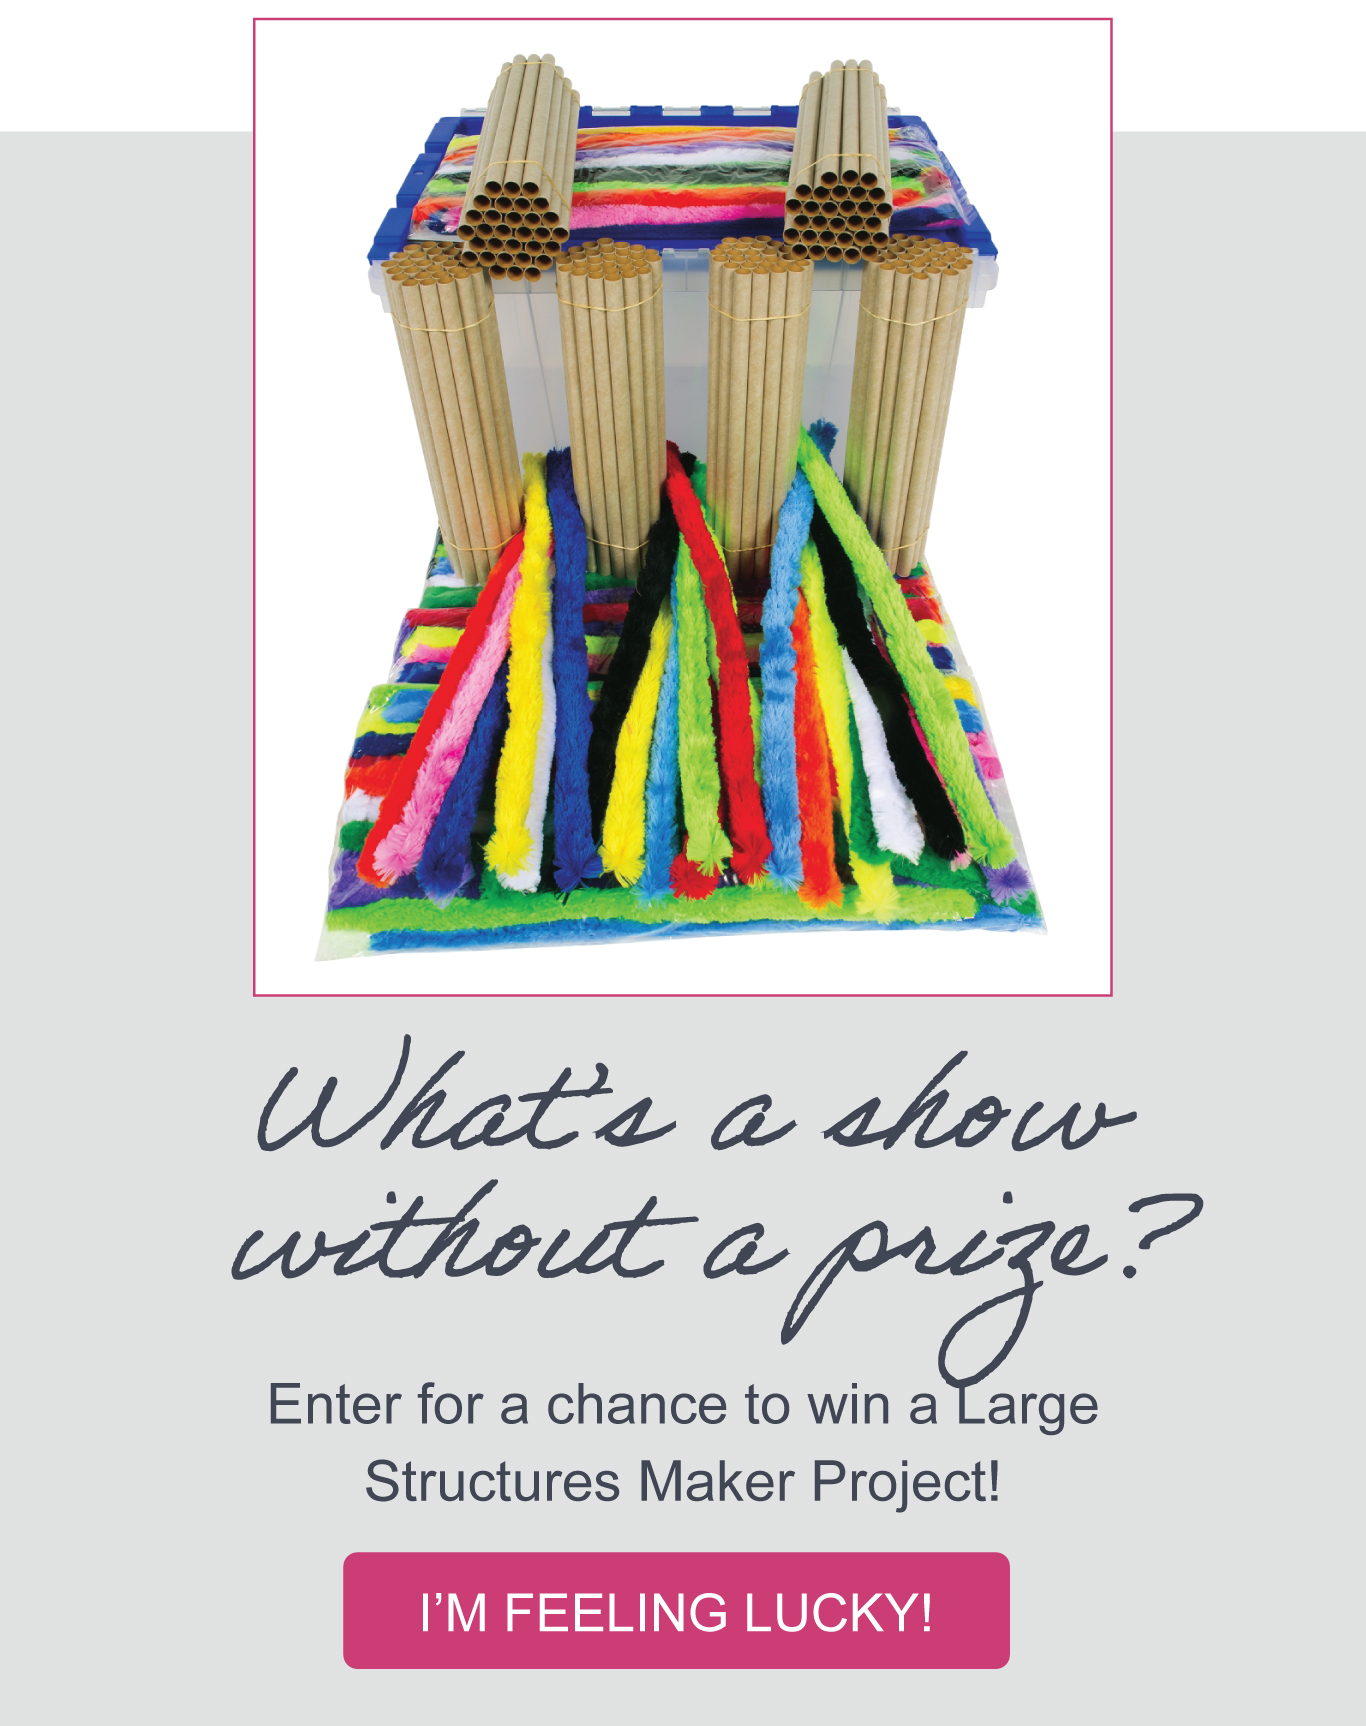 What's a show without a prize? Enter for a chance to win a Large Structure Maker Project.